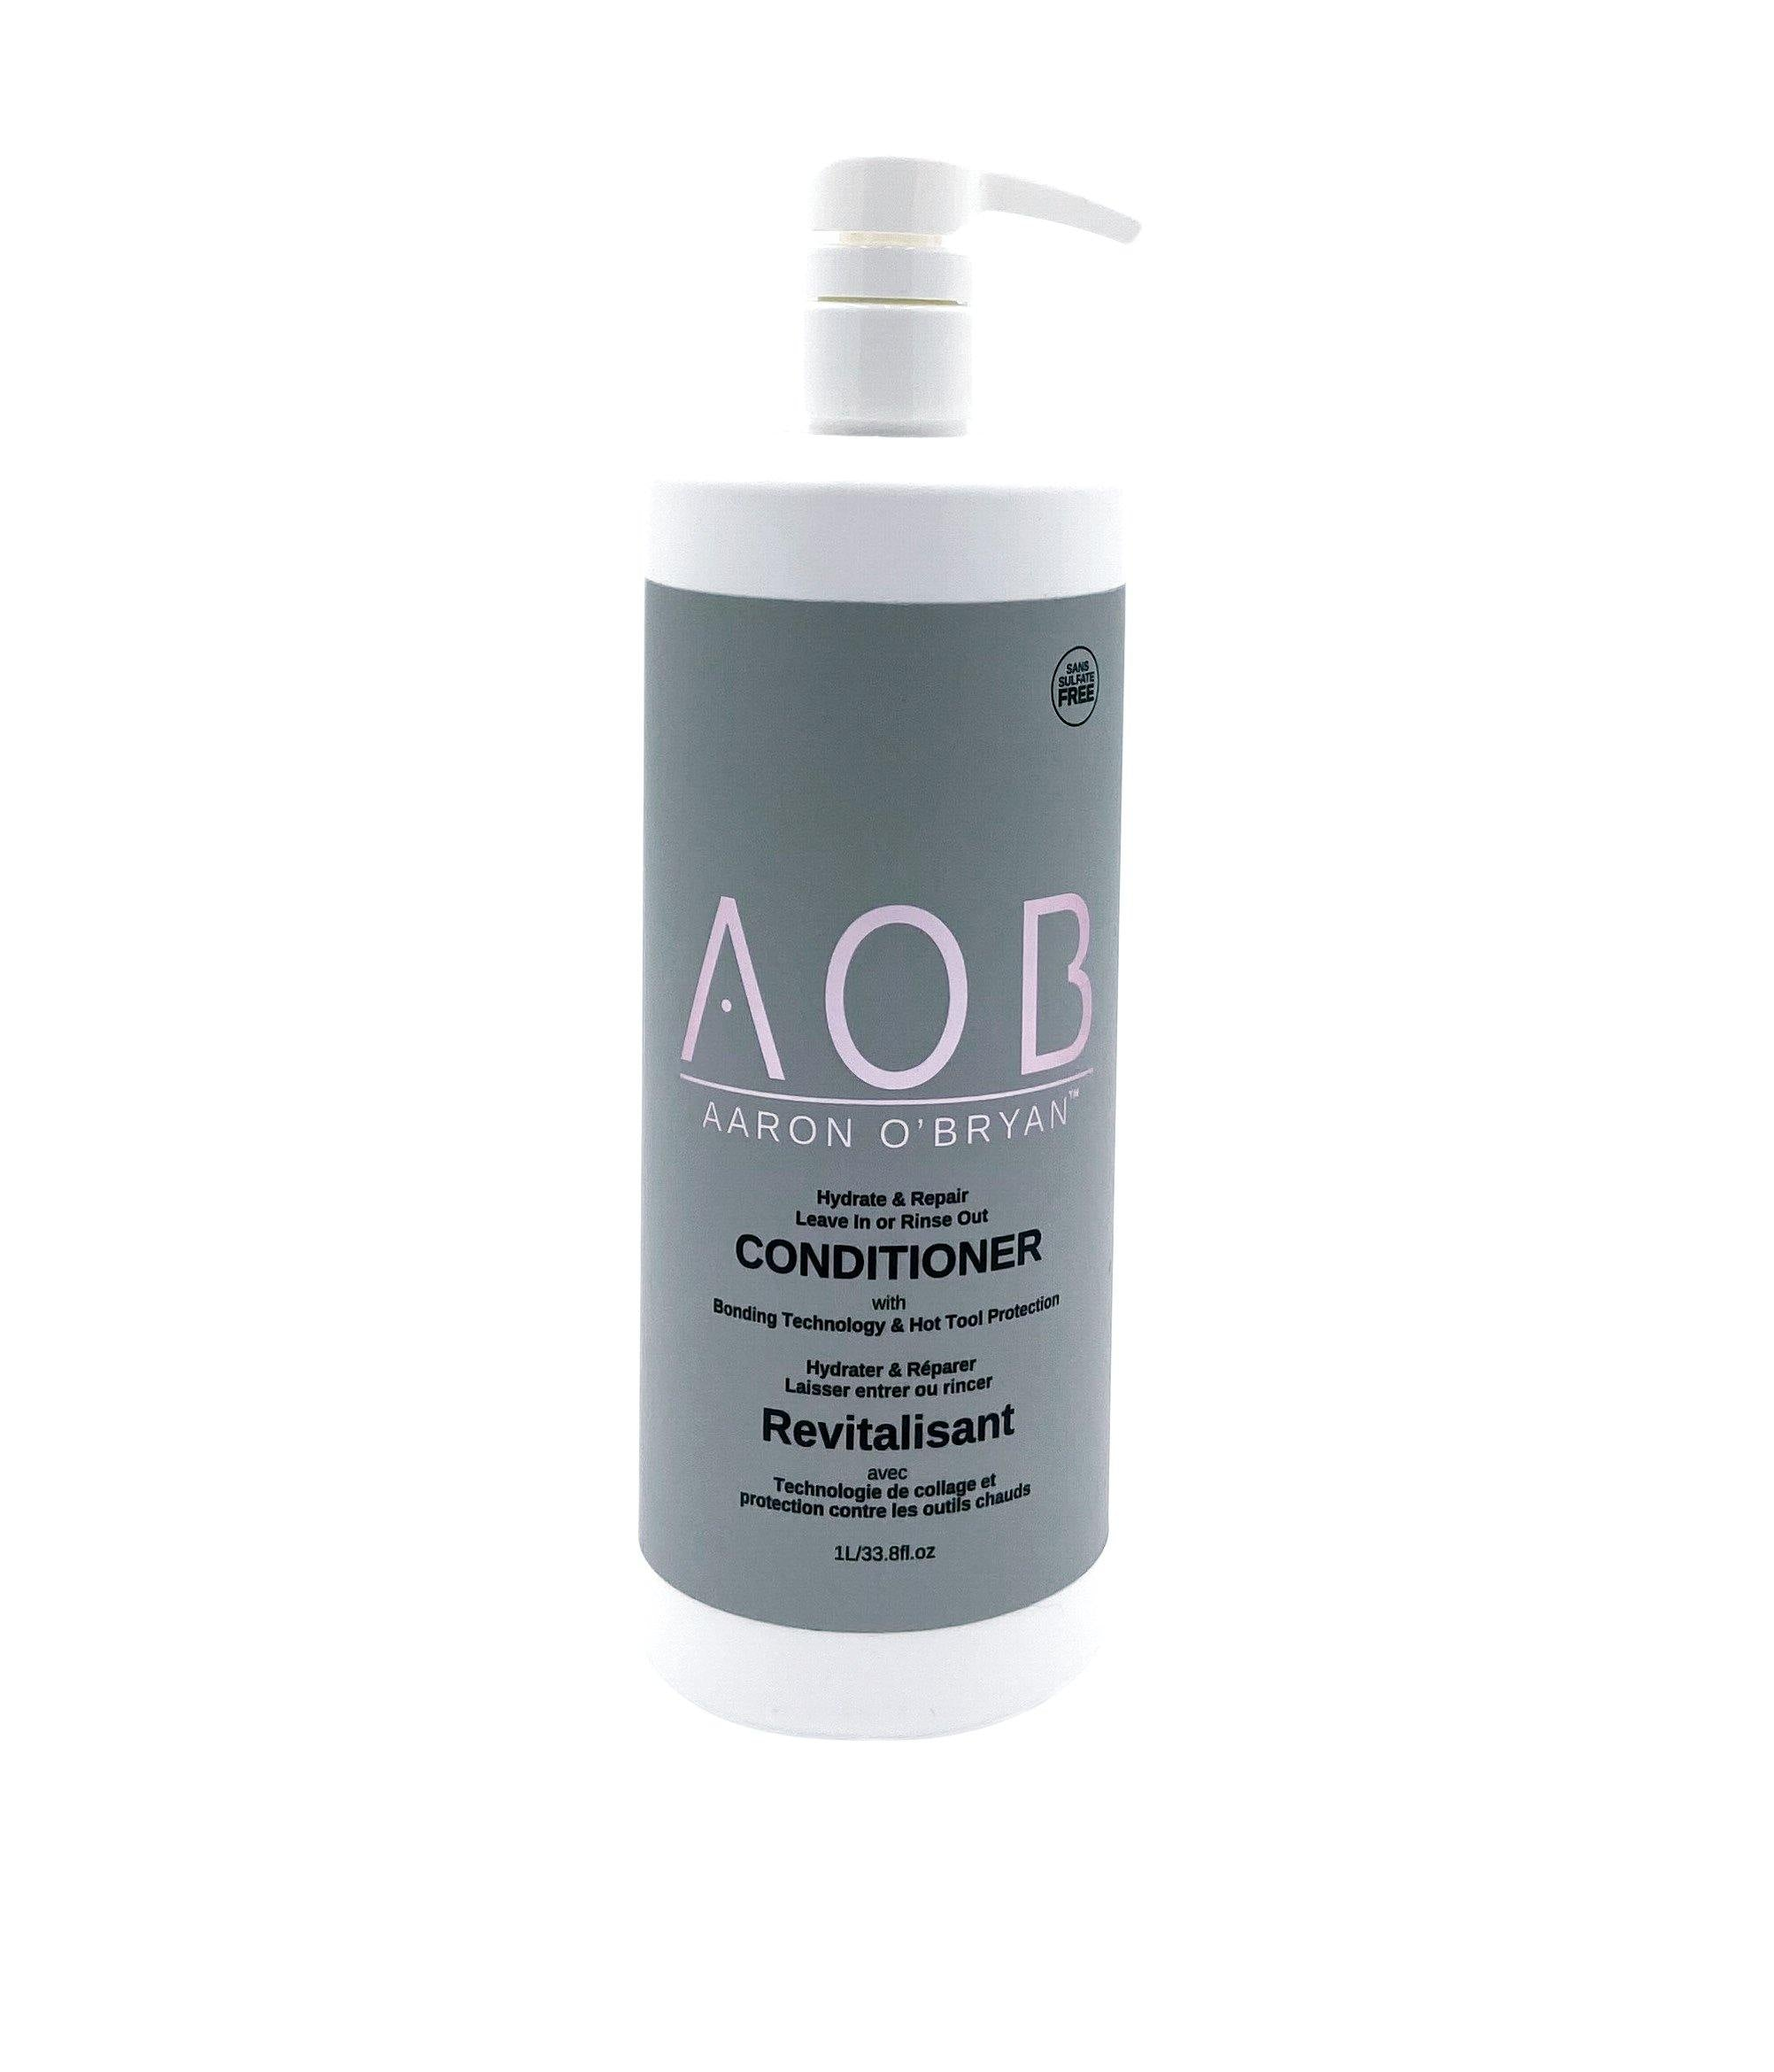 AOB Hydrate & Repair Conditioner (Leave In/Rinse Out) 1 Ltr